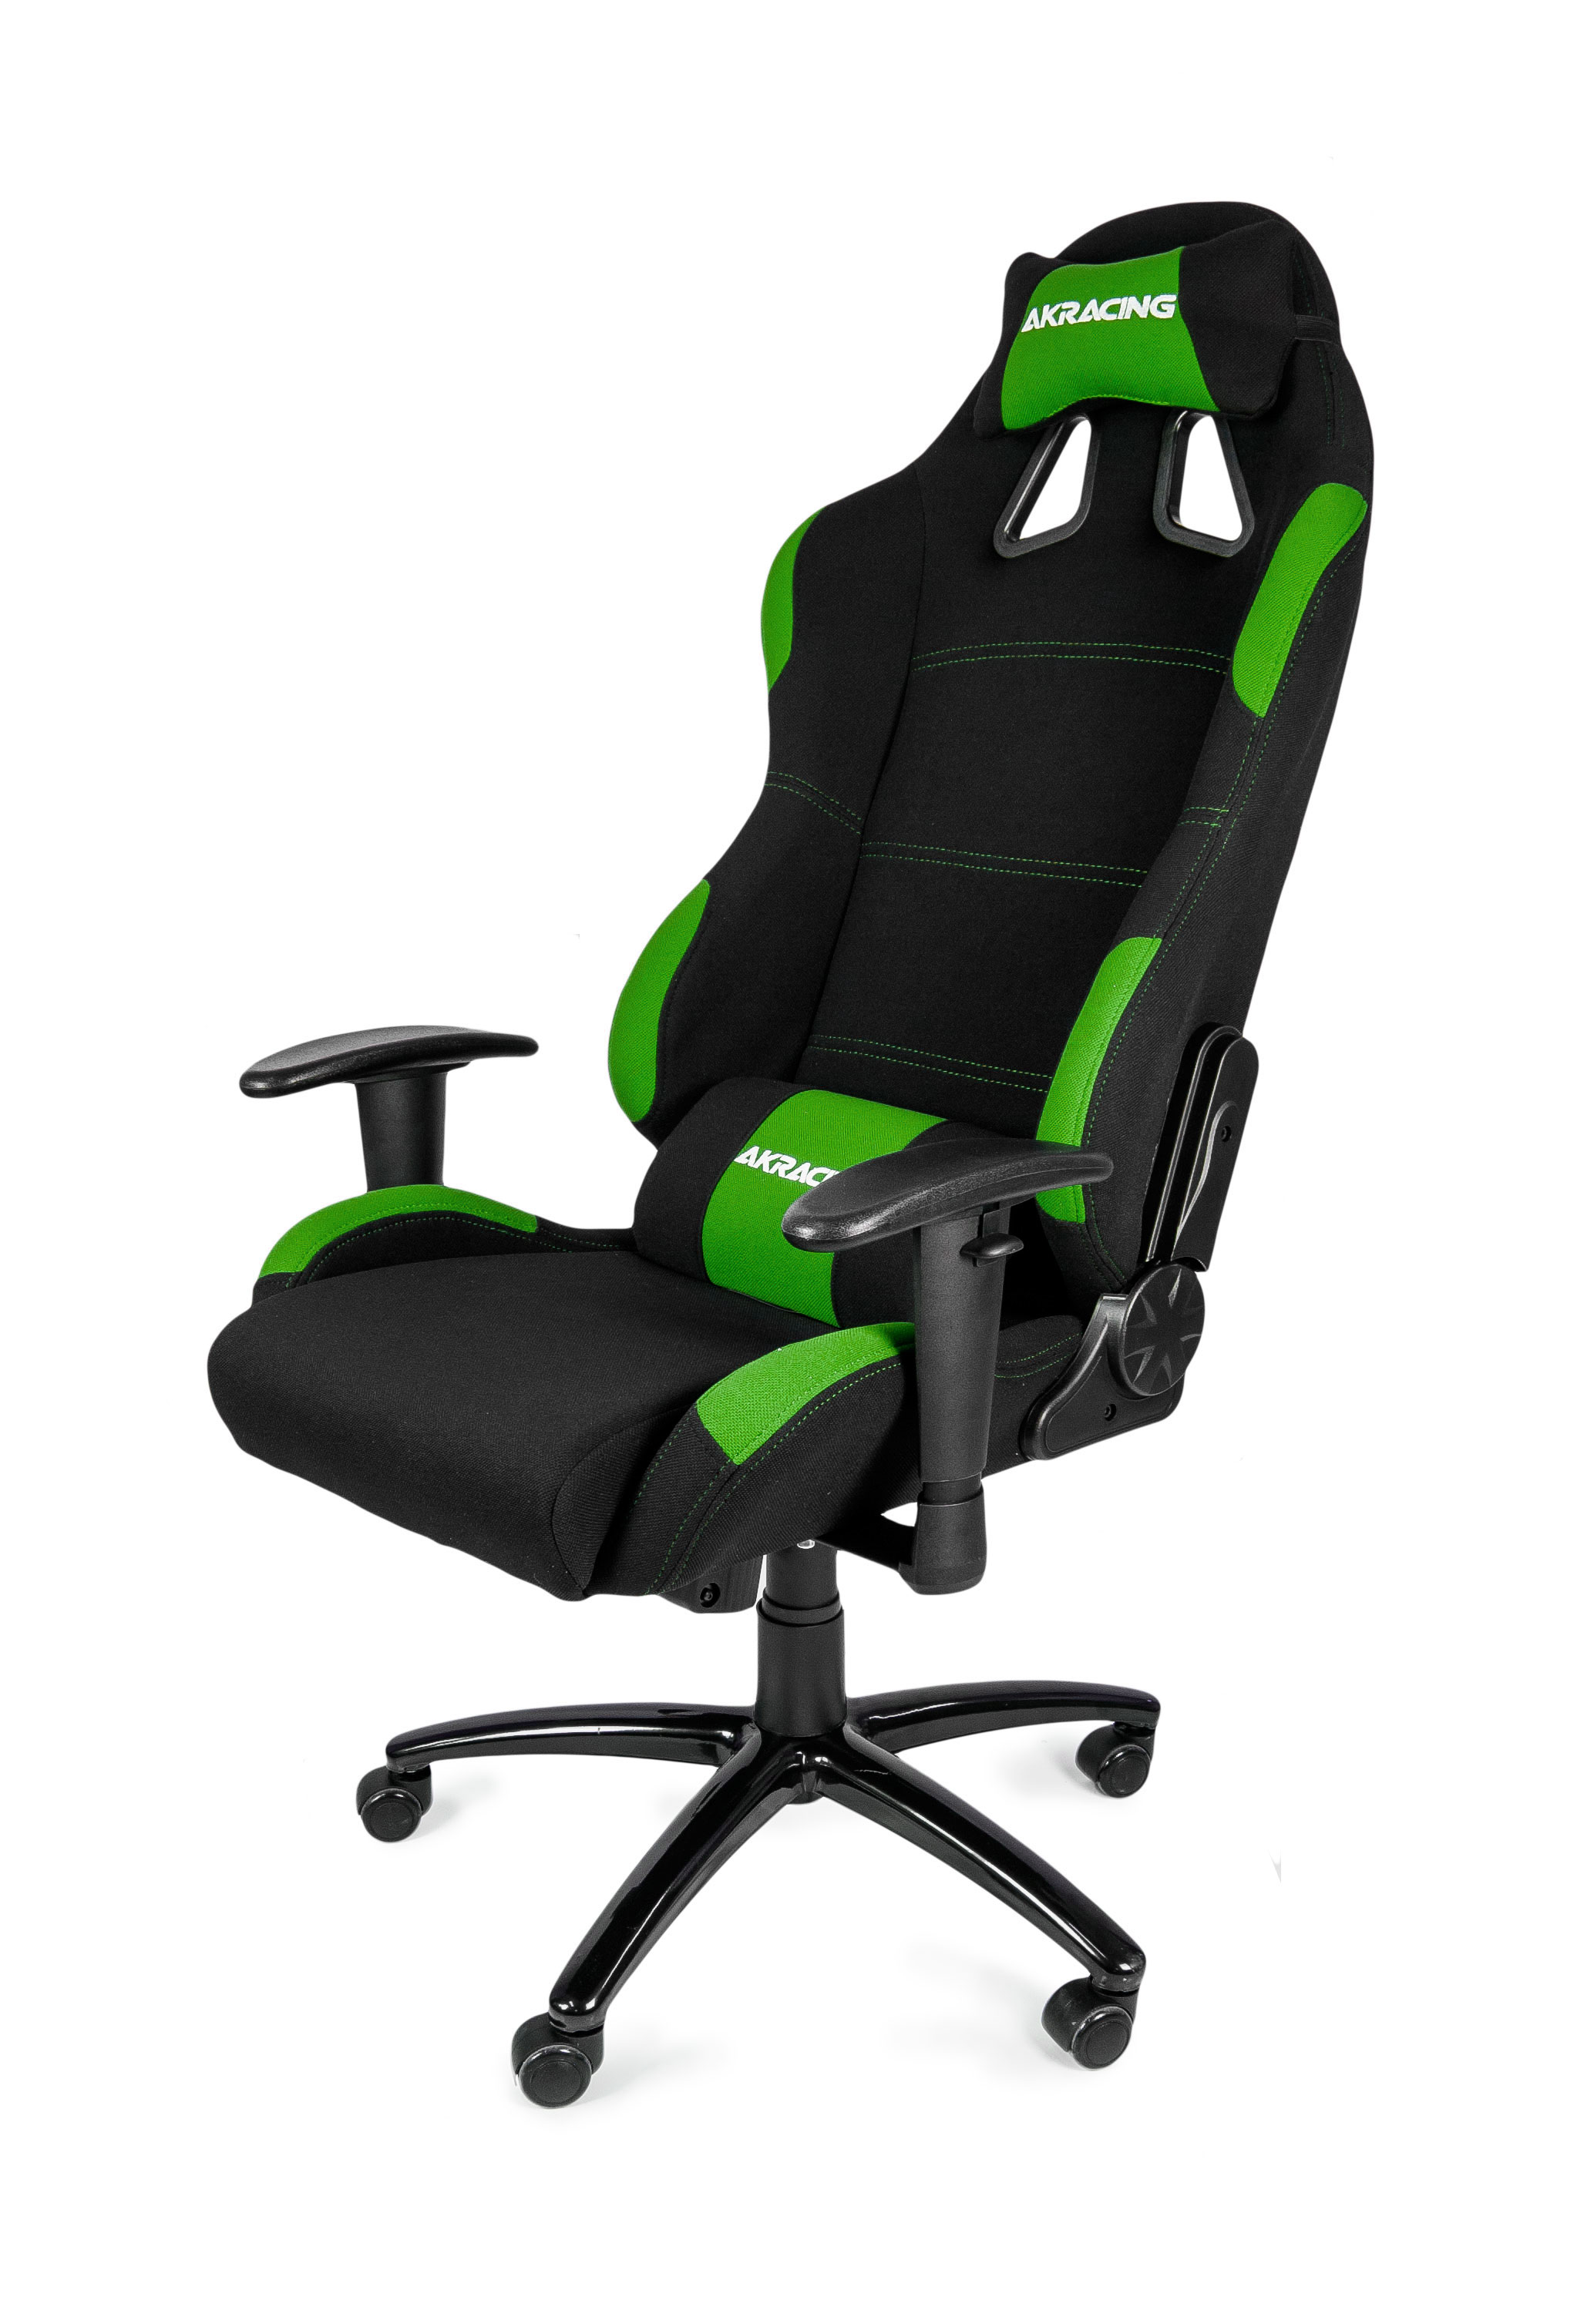 Akracing gaming chair black green ak k7012 bg for Silla gamer barata